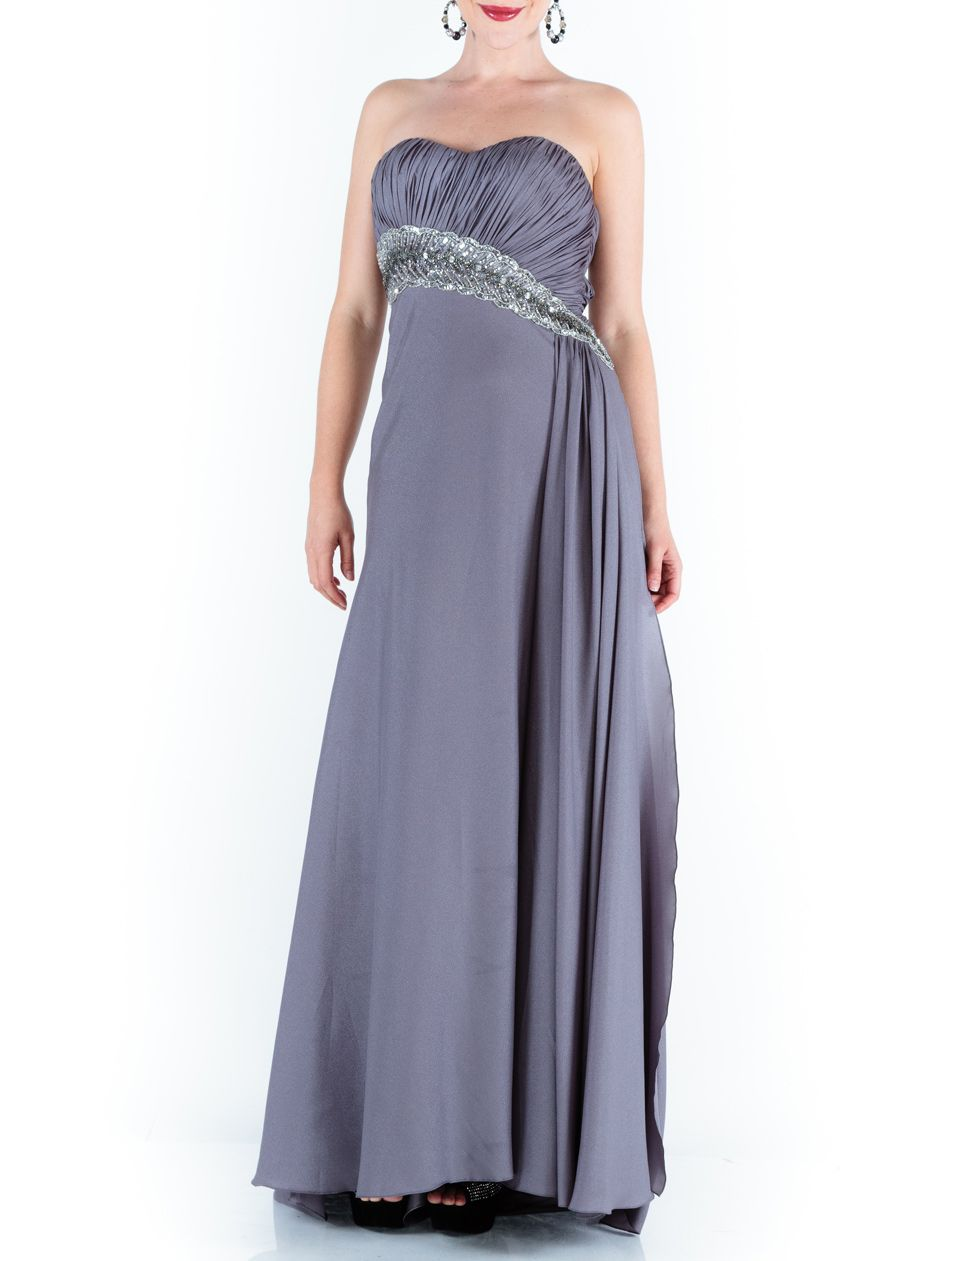 Tristica strapless sweeping maxi dress